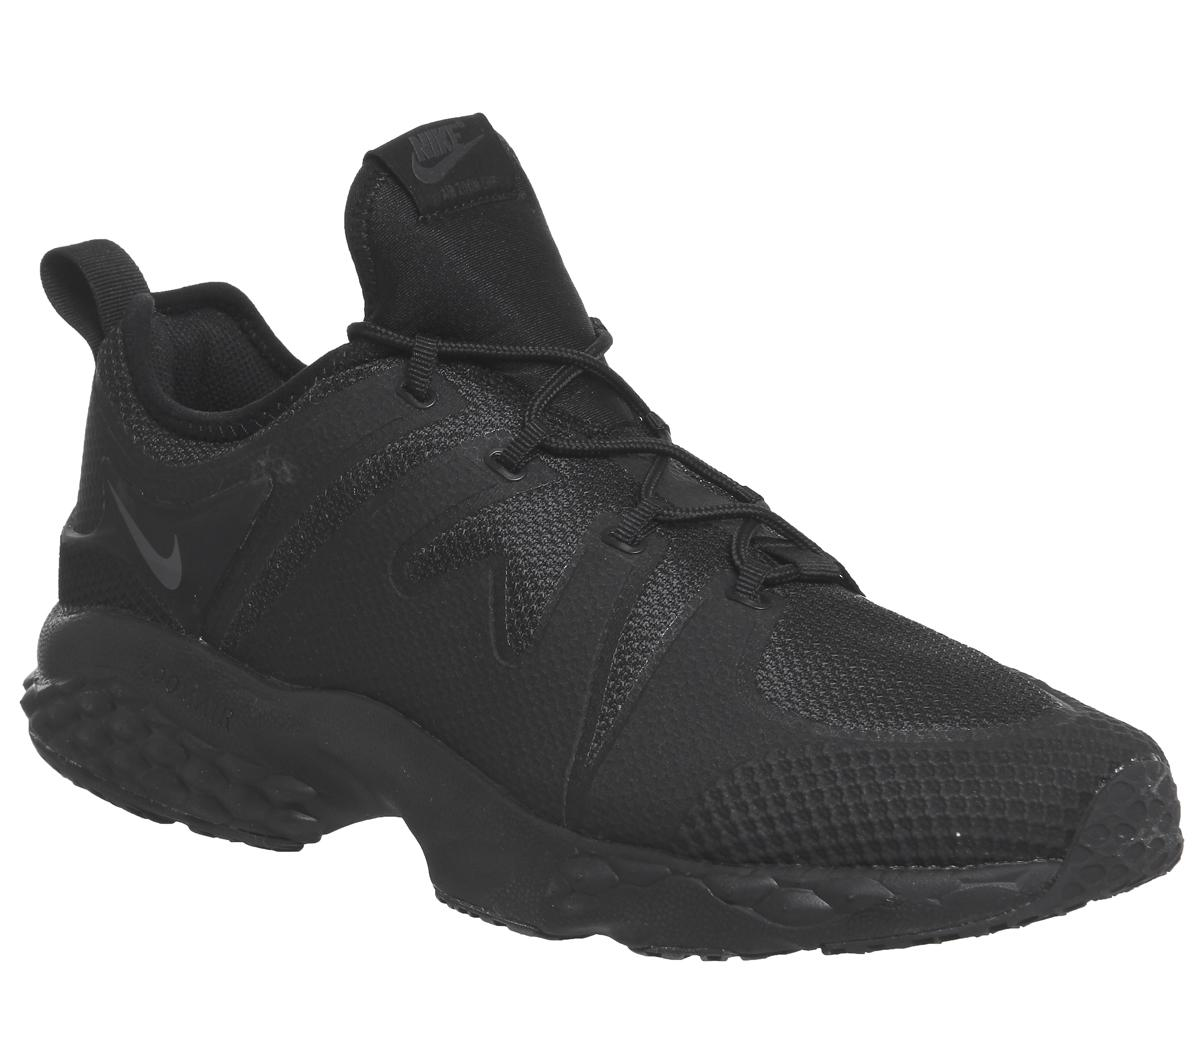 silenzioso limo Vibrare  Nike Air Zoom Lwp 16 Trainers Black - His trainers